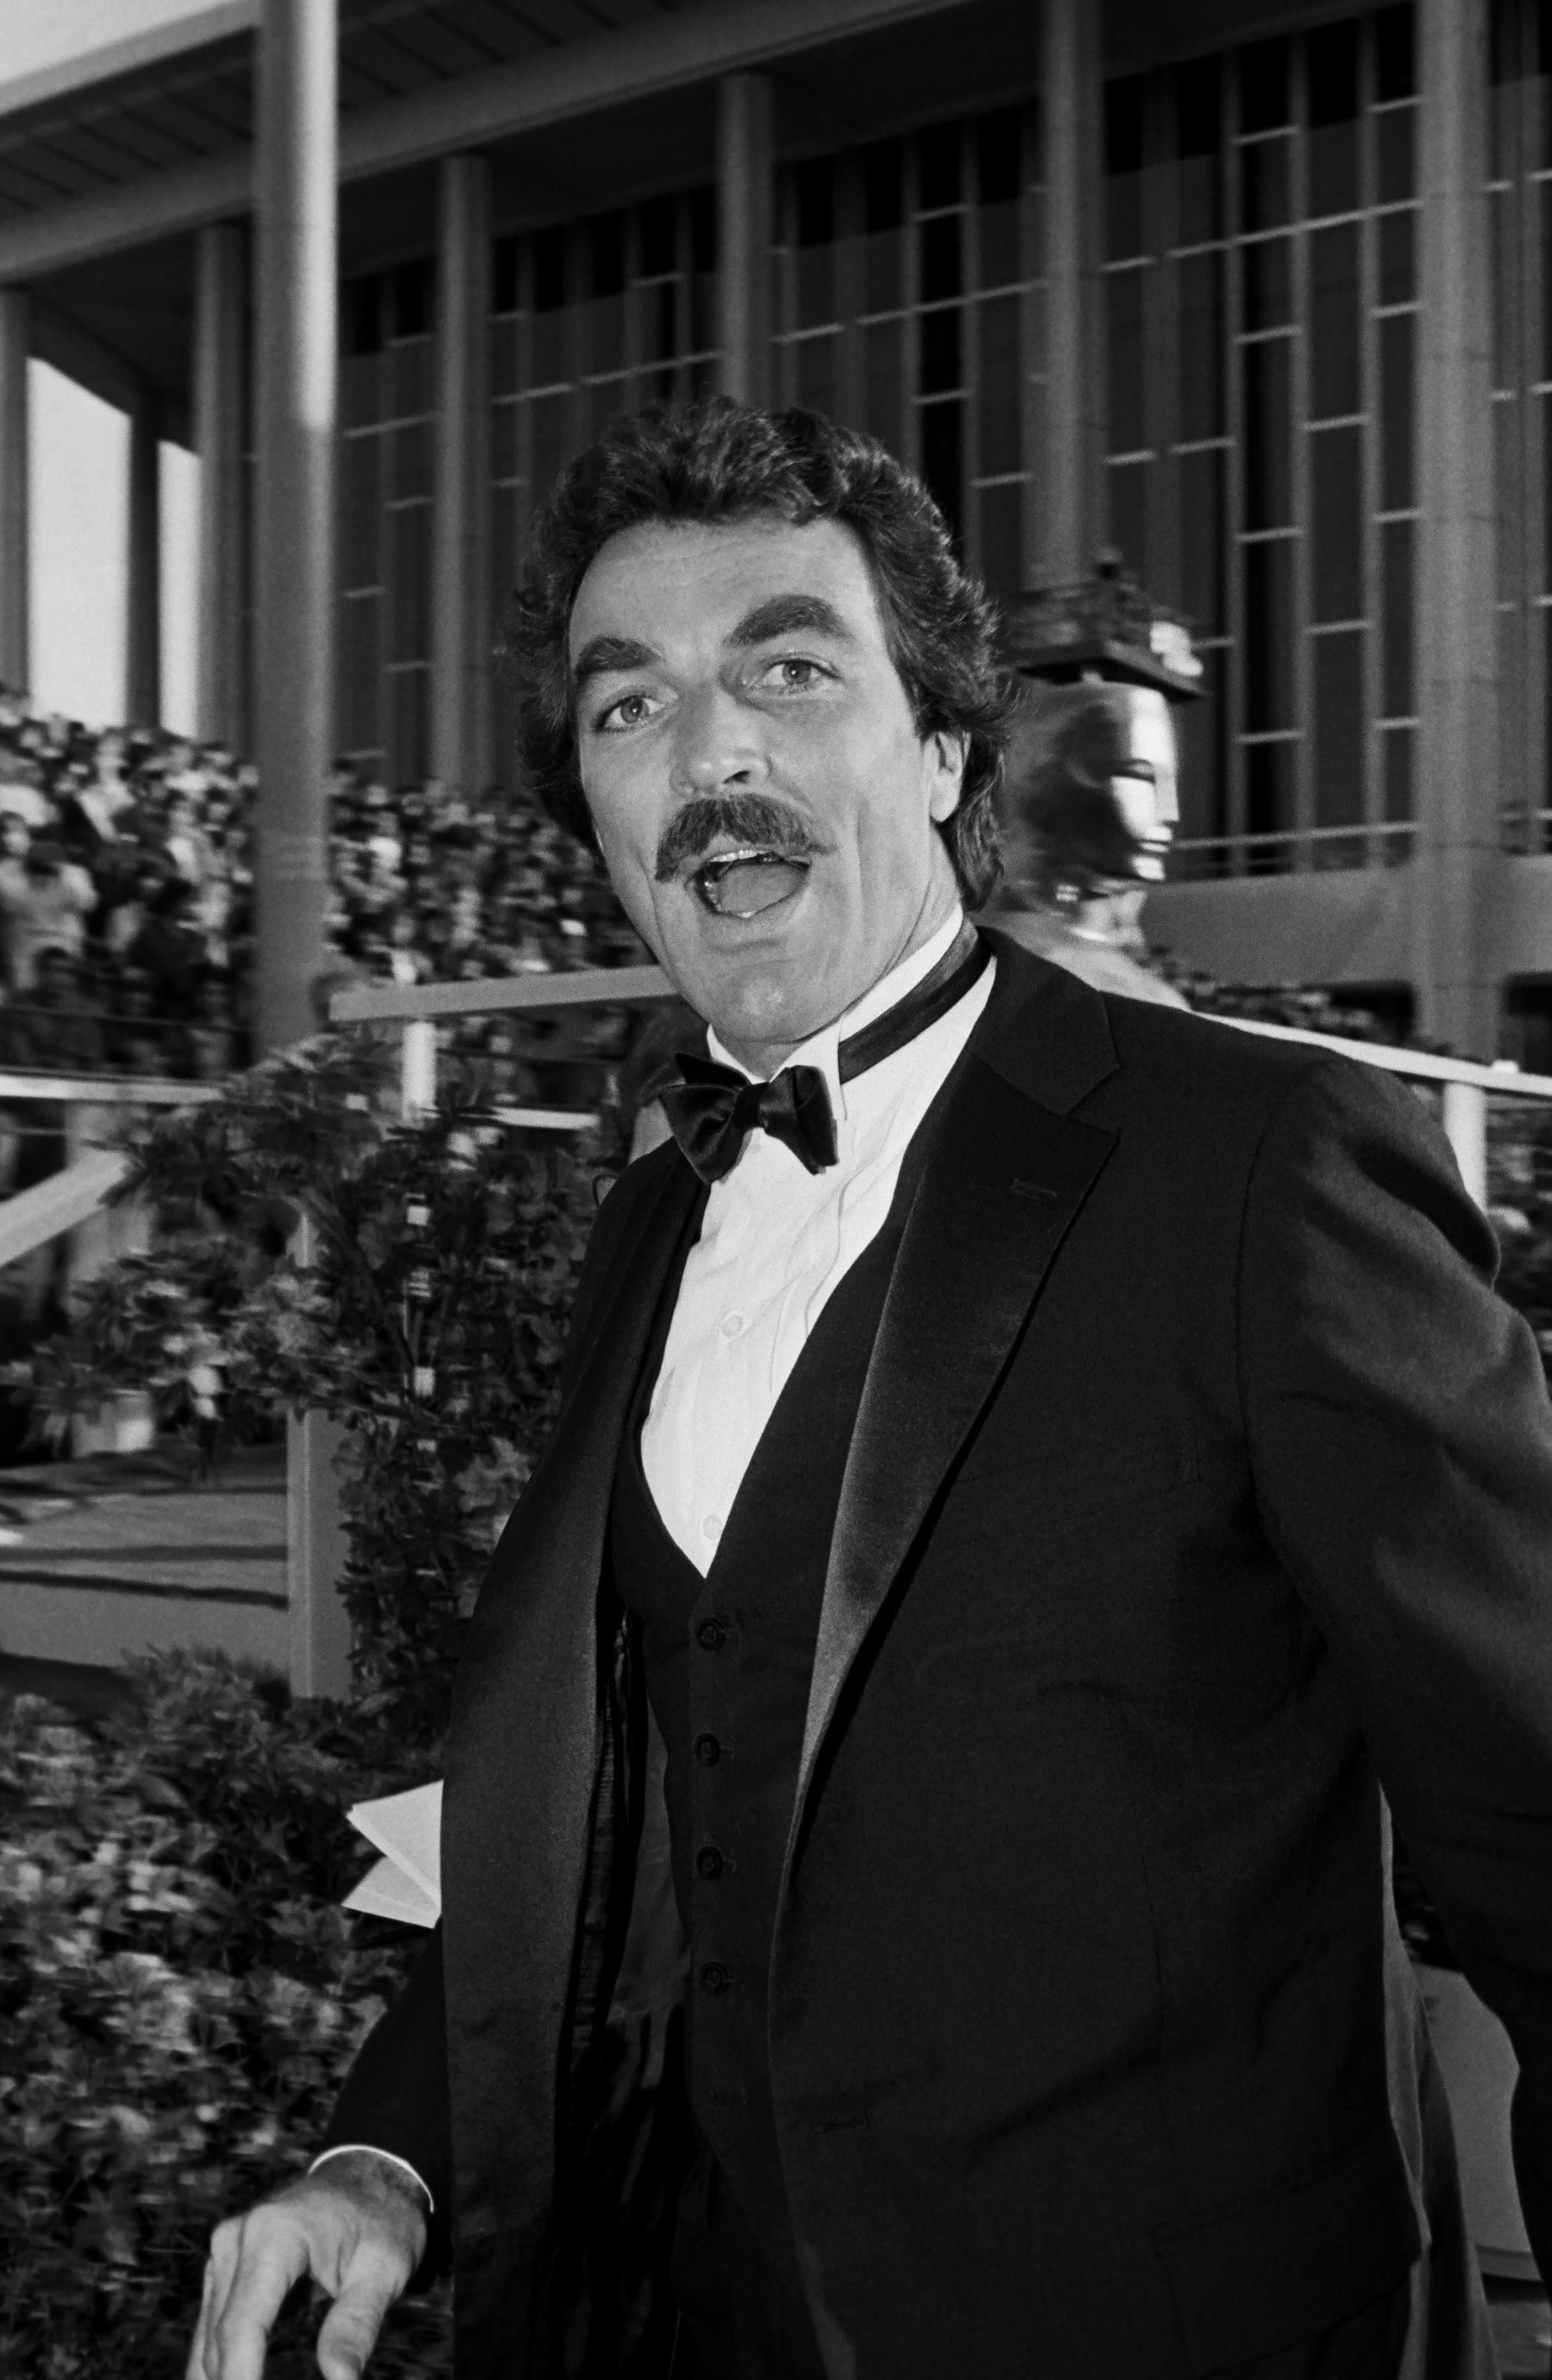 Image Credits: Getty Images | Black and White Portrait of Tom Selleck